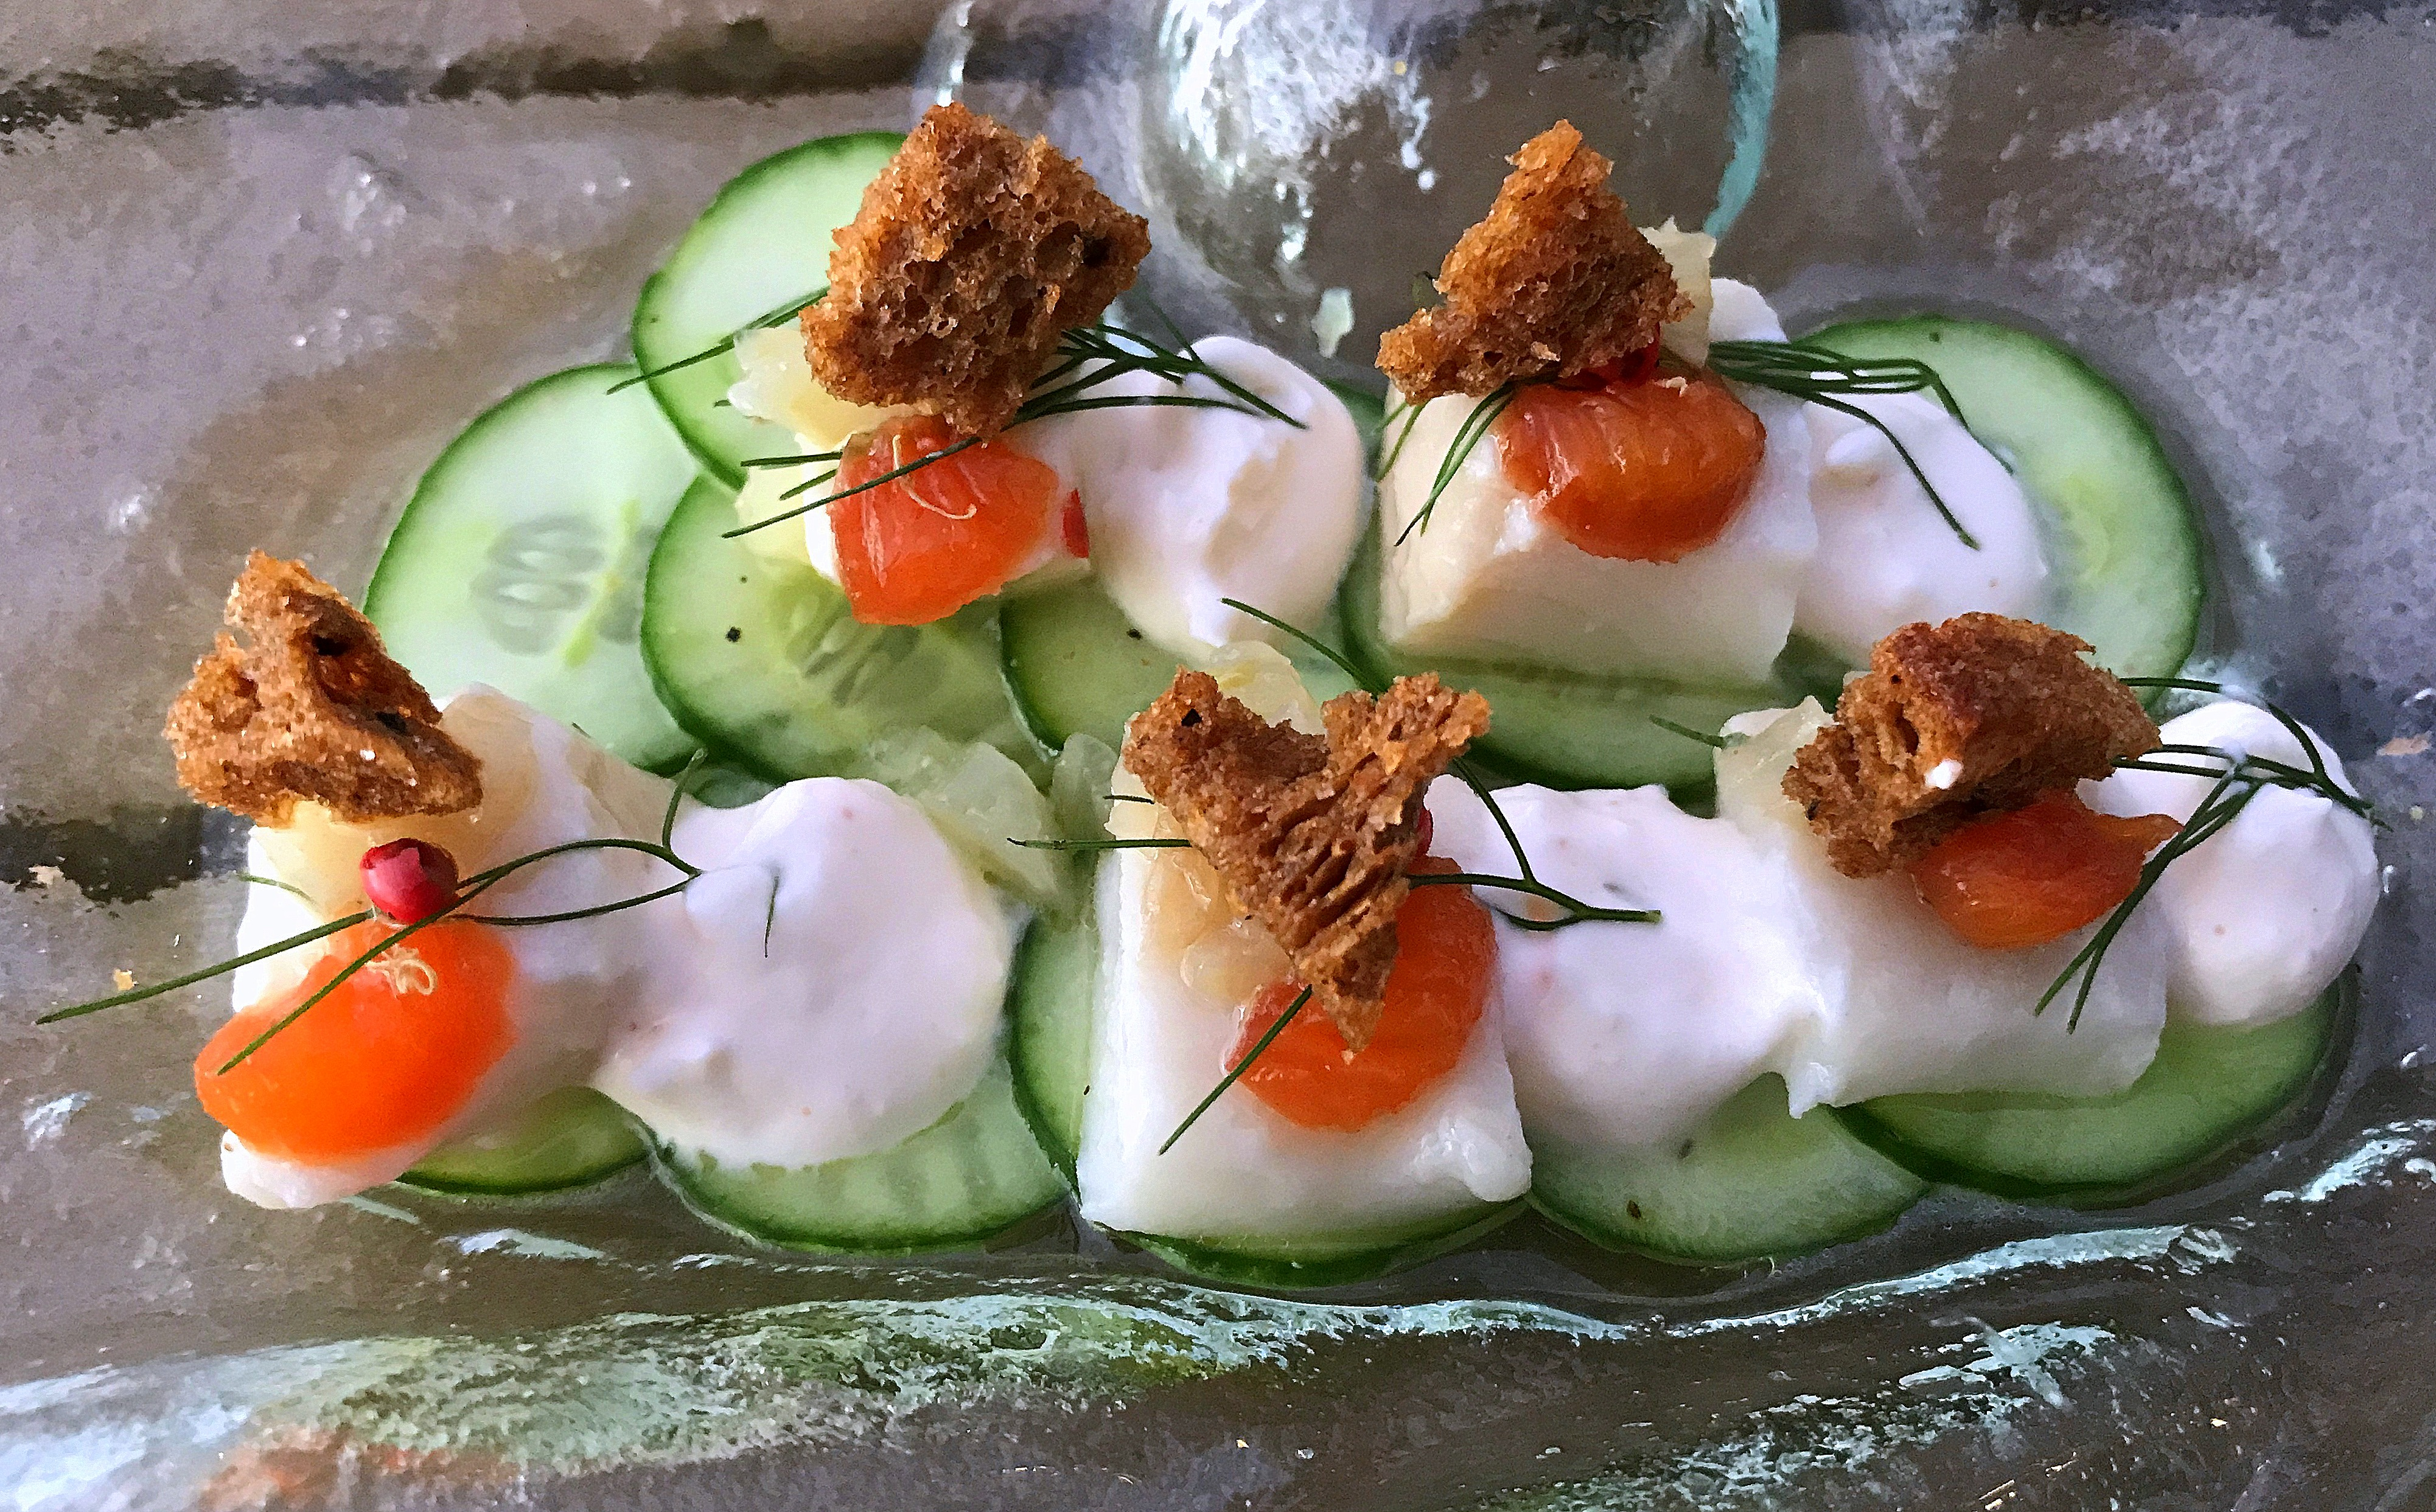 Pickled Black Cod with Persian Cucumber, Fennel, Preserved Plum, Horseradish Crema and Malted Toast